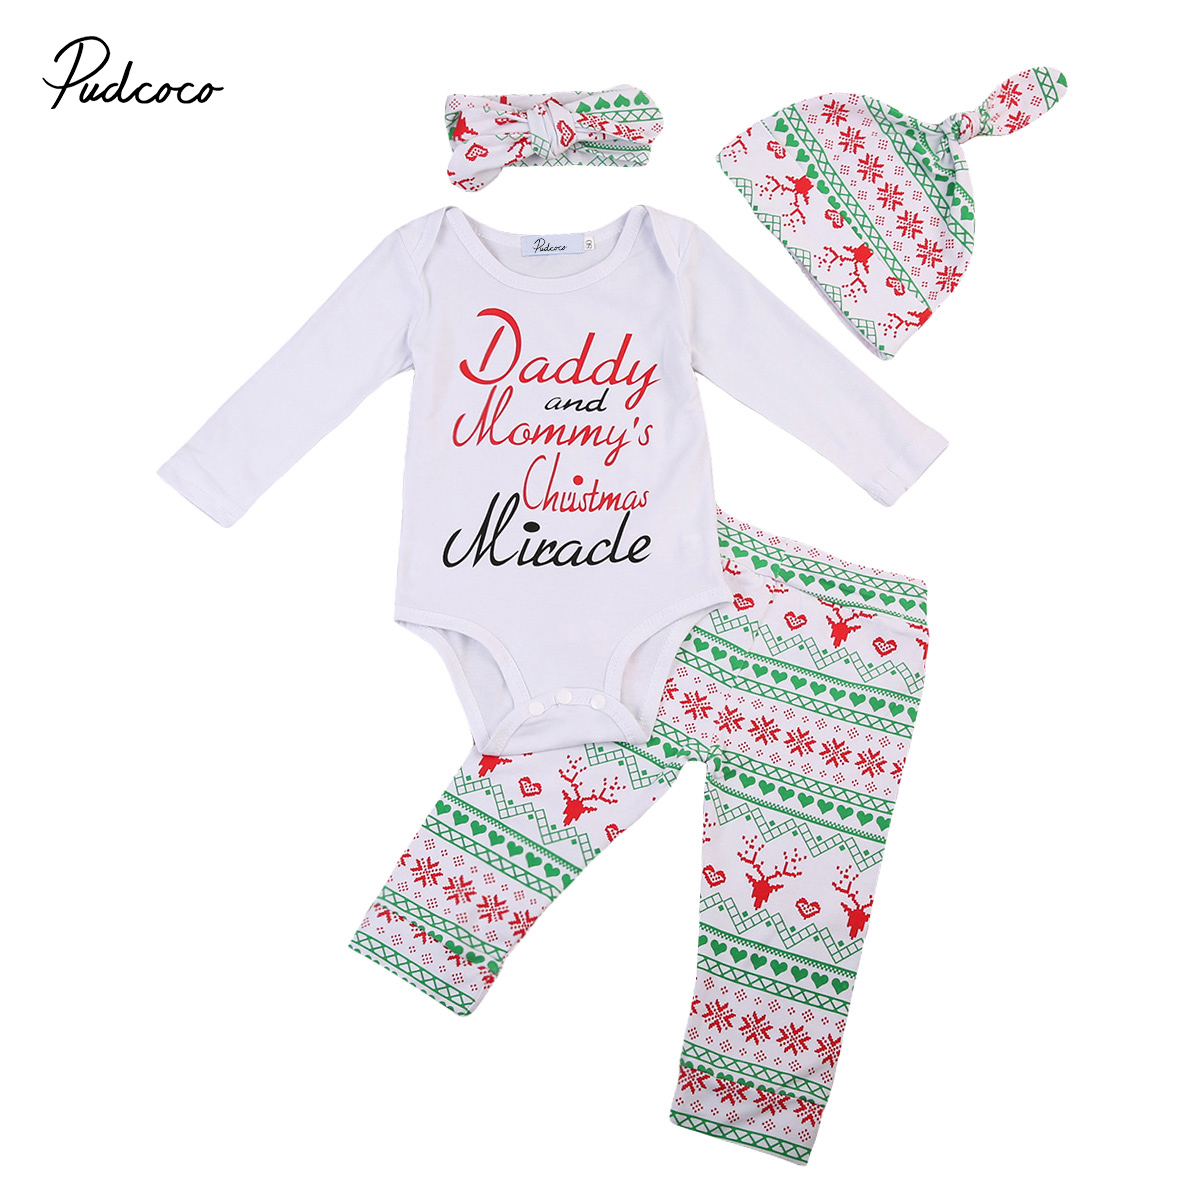 2017 Christmas Newborn Toddler Baby Boys Girls Winter Clothes Long Sleeve Romper Bodysuit+Pants Outfits Set 4Pcs Hat Handband fashion 2pcs set newborn baby girls jumpsuit toddler girls flower pattern outfit clothes romper bodysuit pants